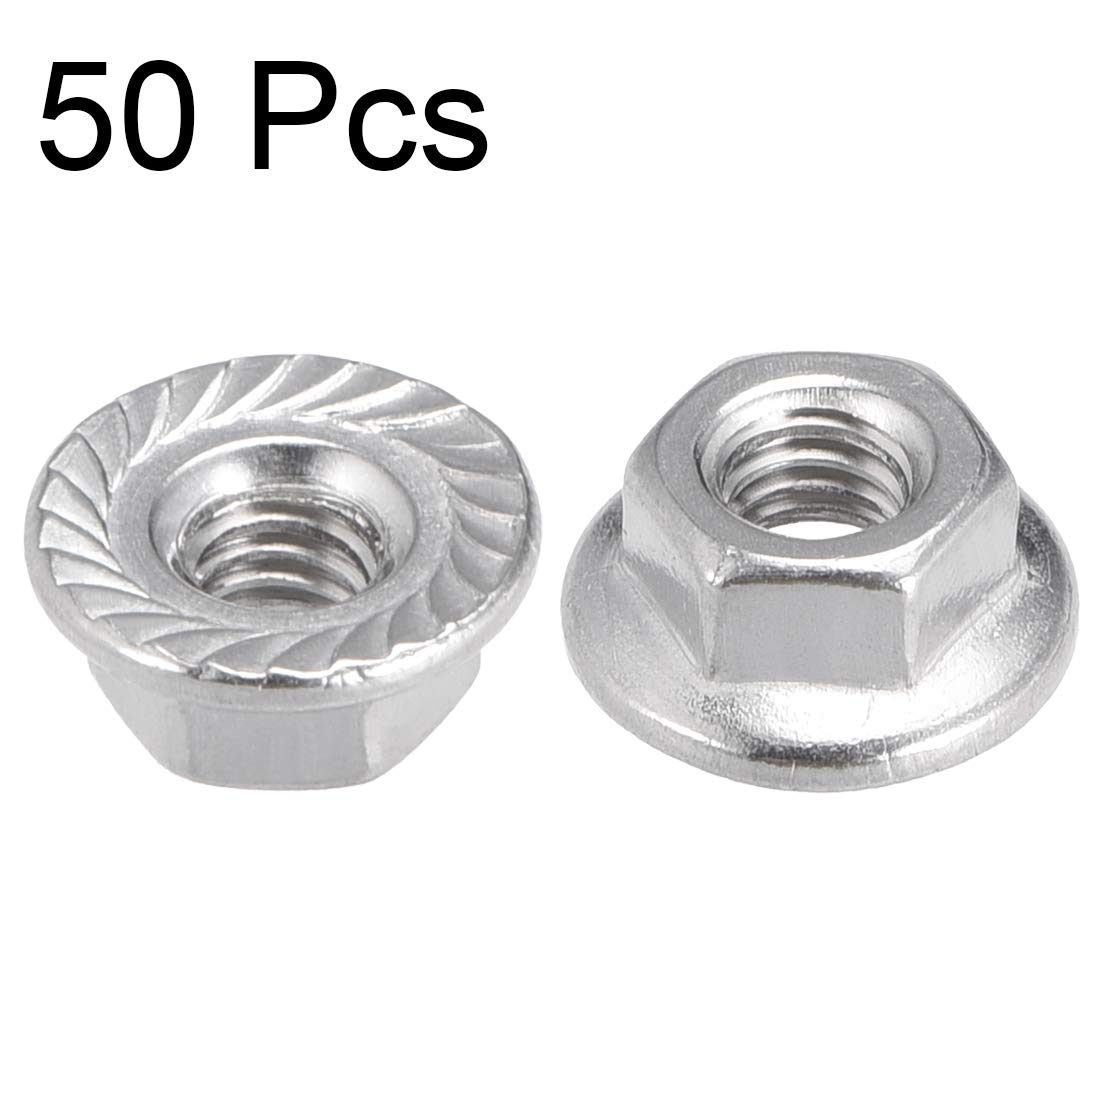 304 Stainless Steel 4 Pcs uxcell M10 Serrated Flange Hex Lock Nuts